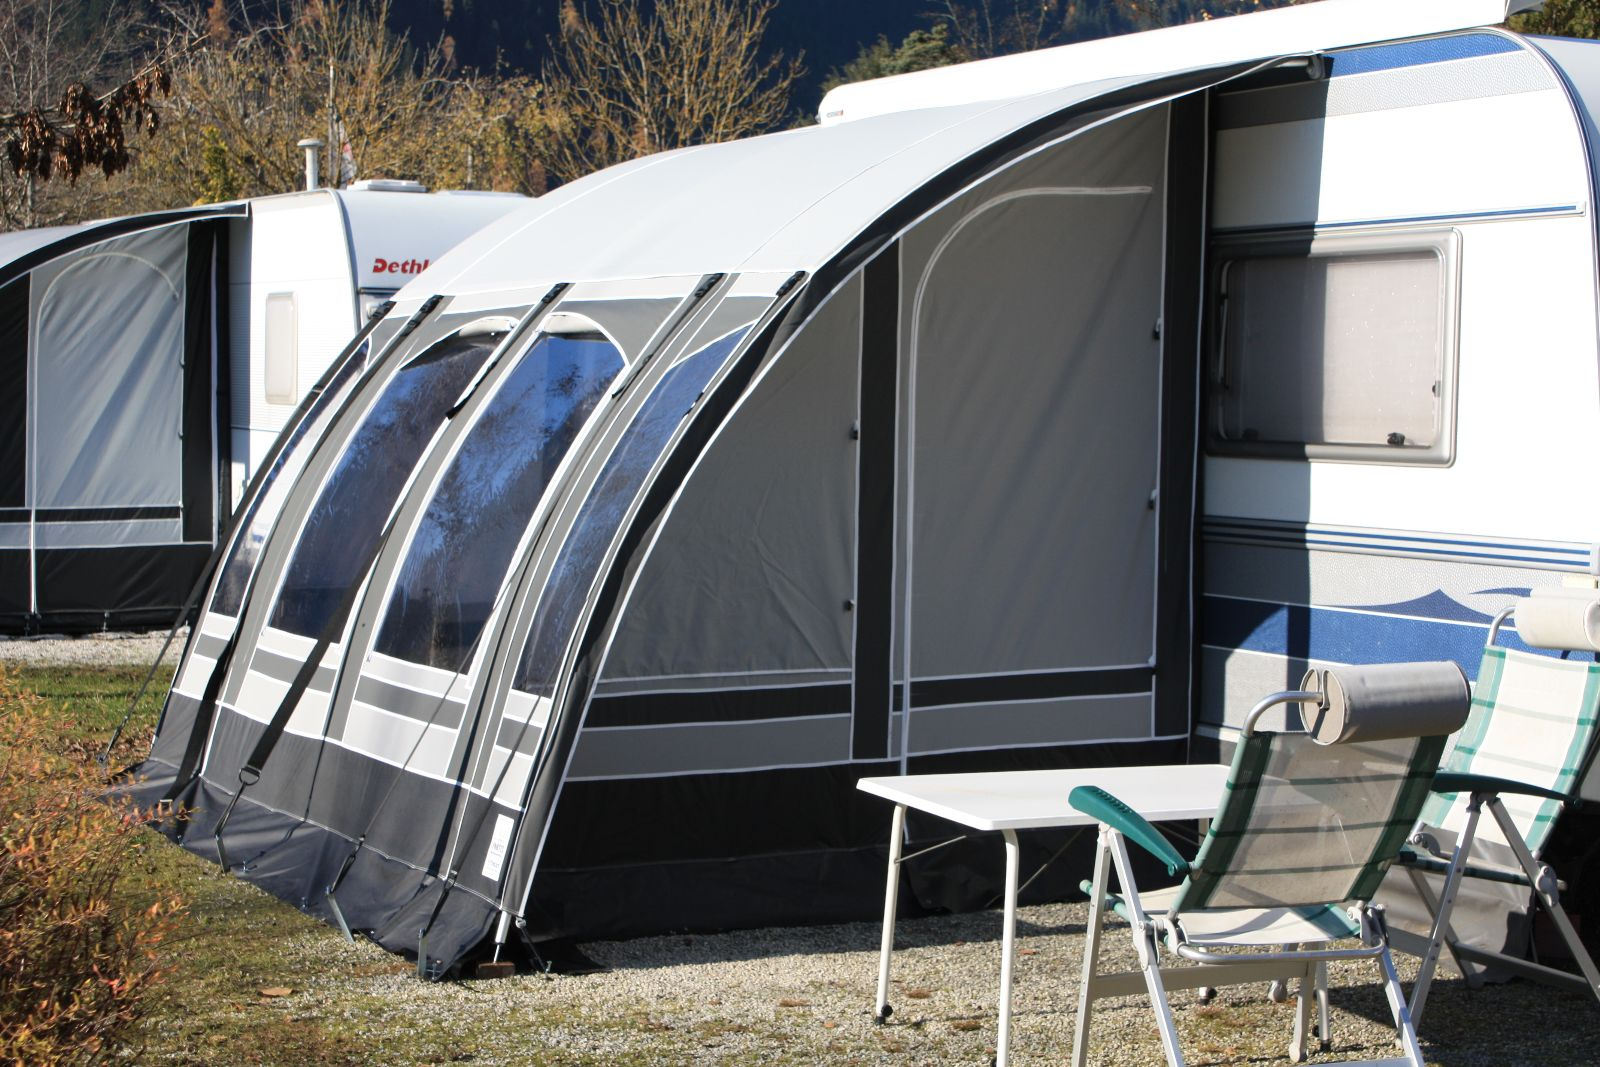 Prices ... & Winter Tents - Awning Camper | Buycaravanawning.com | Fortex ...